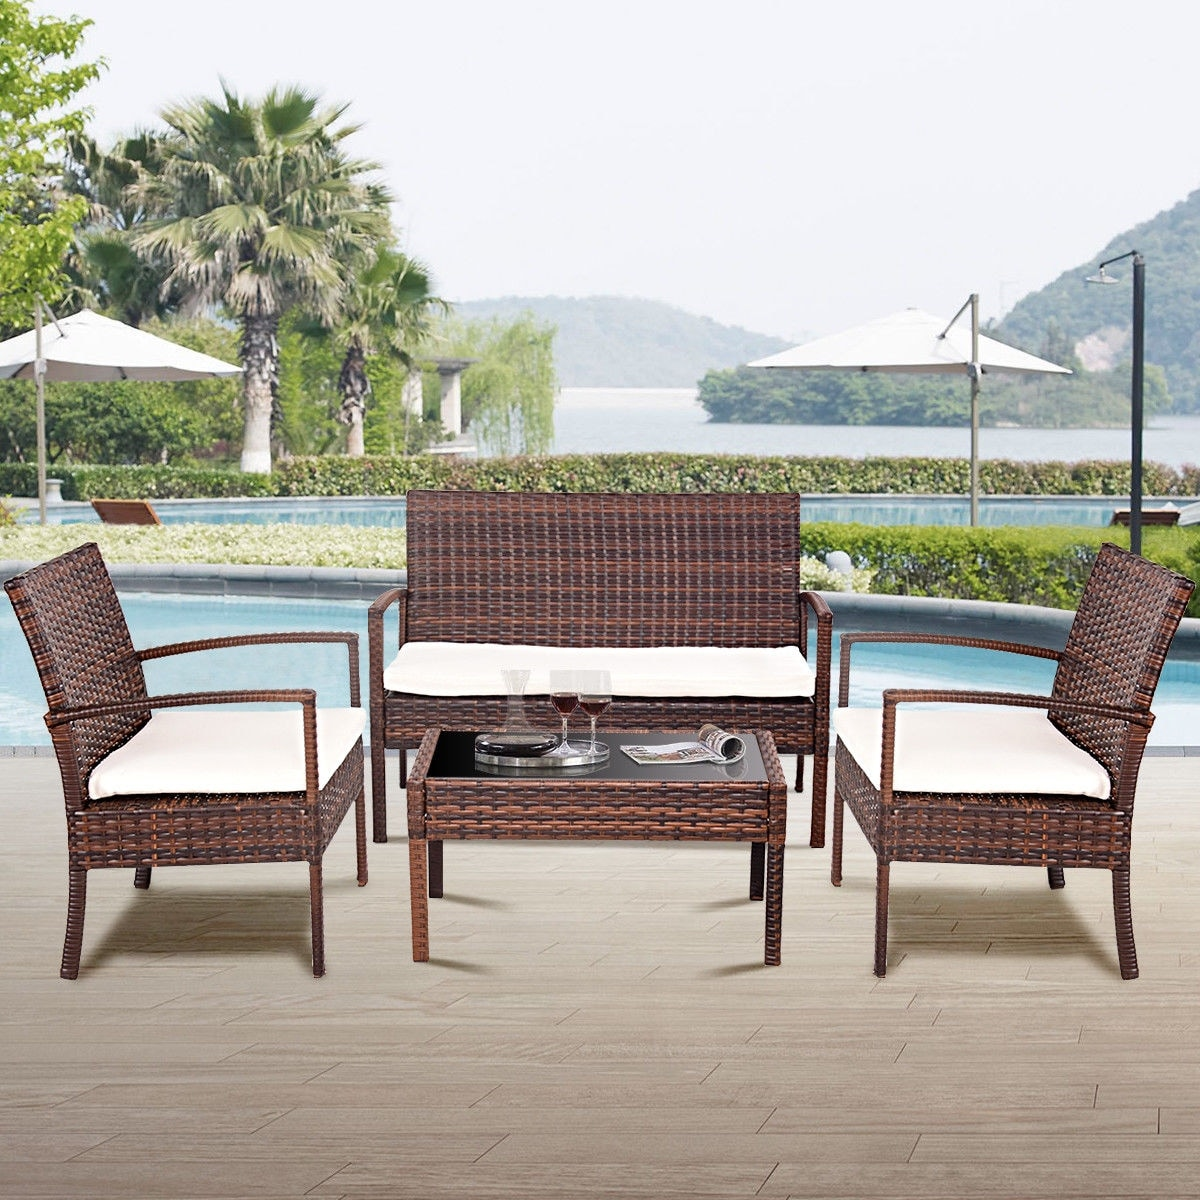 Magnificent Costway 4 Pc Rattan Patio Furniture Set Garden Lawn Sofa Wicker Cushioned Seat Brown Home Interior And Landscaping Ferensignezvosmurscom